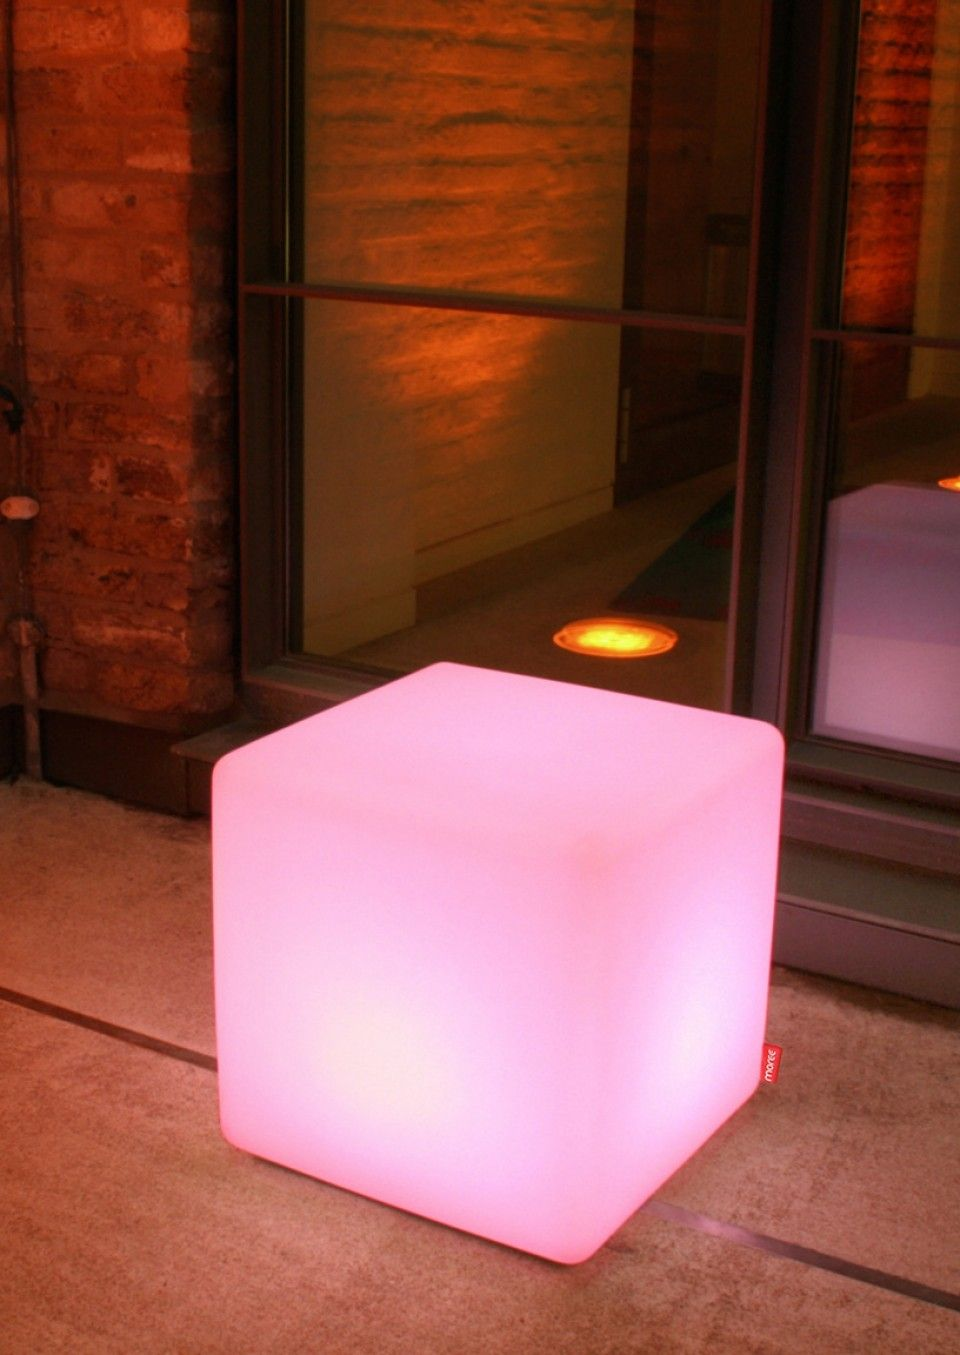 Illuminate Your Garden With This Stunning Multicoloured Outdoor Led Cube Light Up Table By German High End Designer Moree The Cube Table Also Doubles As A Sea